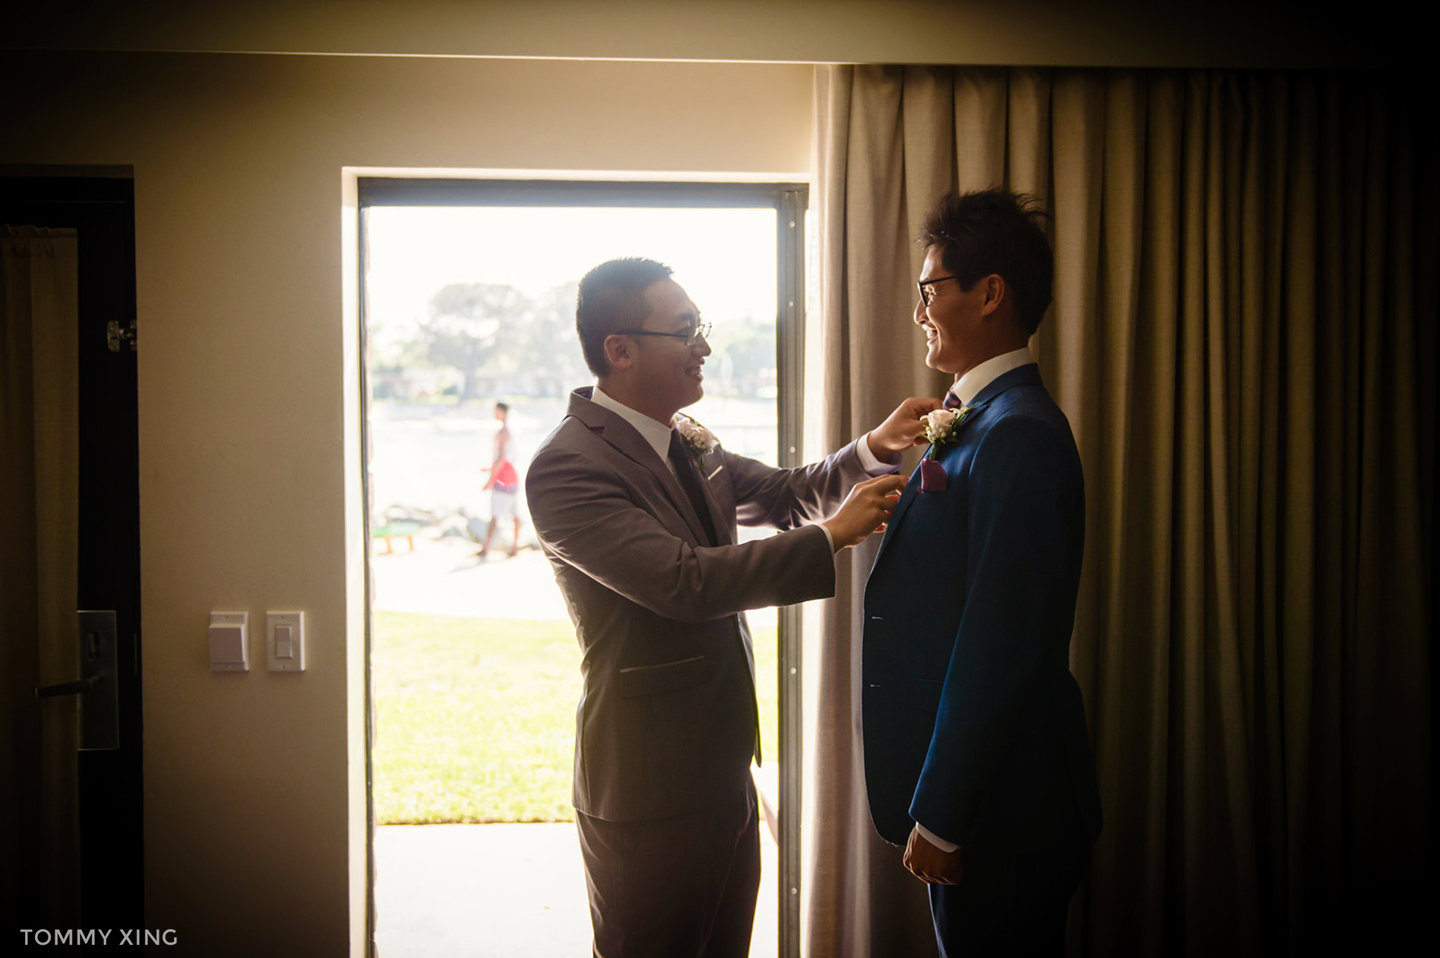 Paradise Point Resort Wedding Xiaolu & Bin San Diego 圣地亚哥婚礼摄影跟拍 Tommy Xing Photography 洛杉矶婚礼婚纱照摄影师 055.jpg